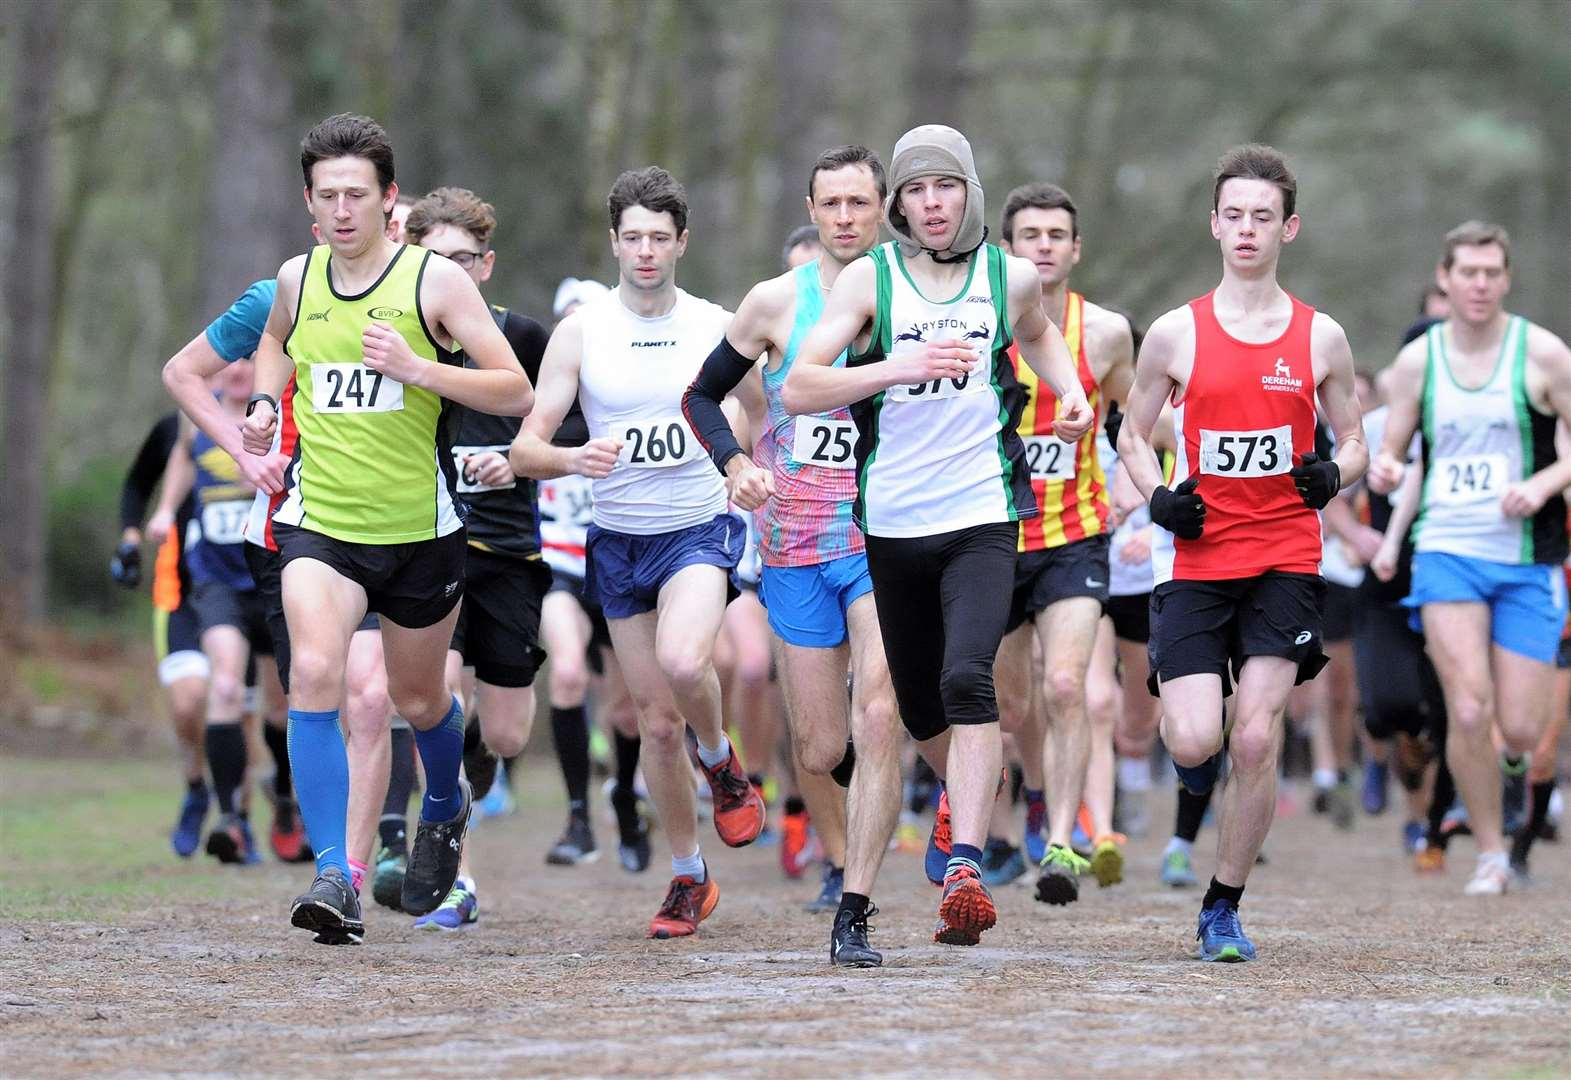 Ryston's Nic Bensley nails down fourth straight success at Shouldham Warren